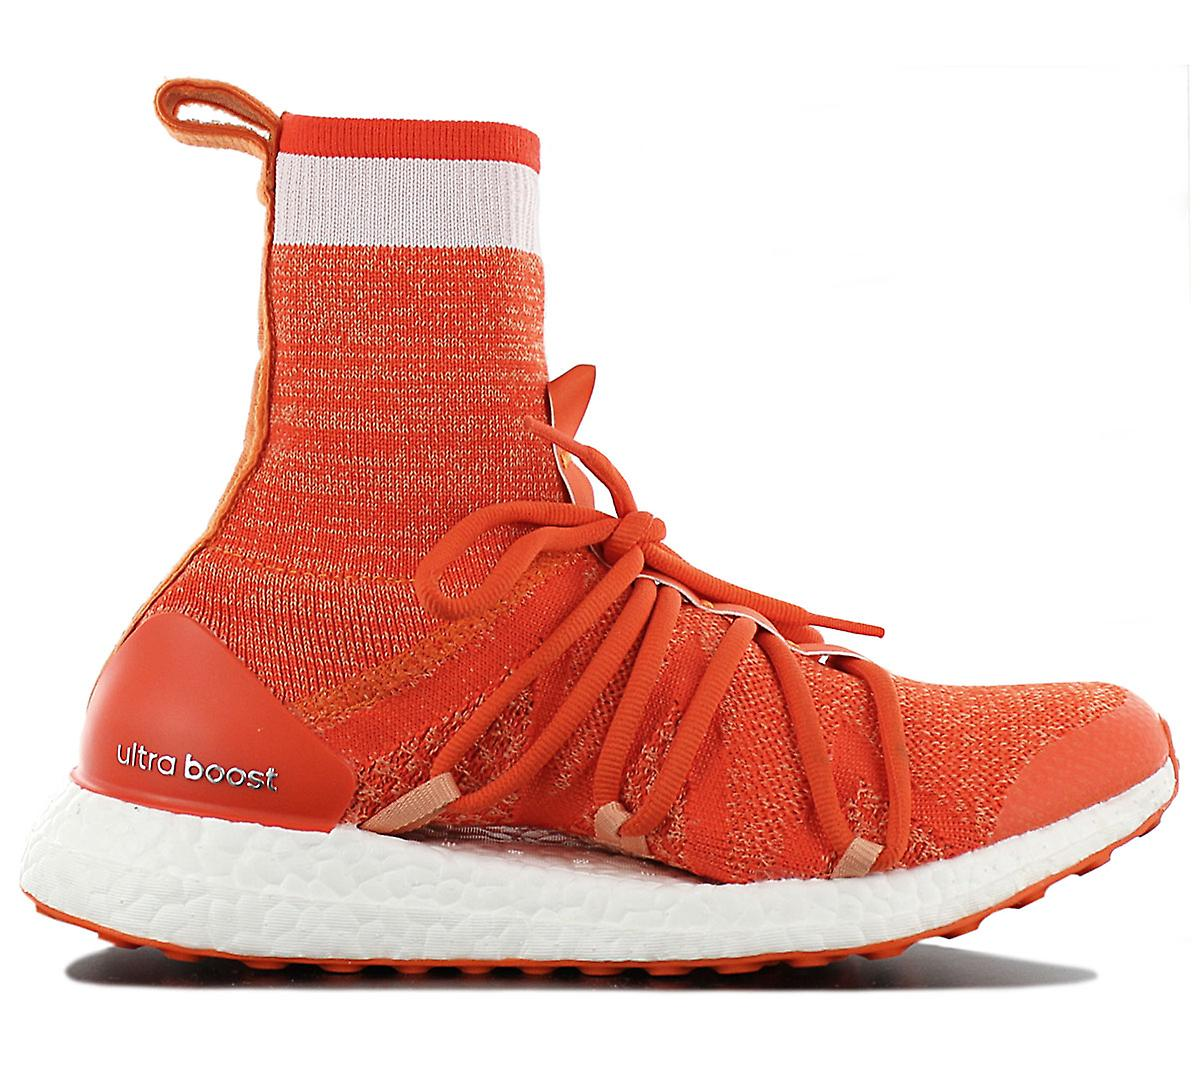 adidas by STELLA MCCARTNEY Ultraboost X Mid CM7736 Damen Schuhe Orange Sneakers Sportschuhe UCVeu